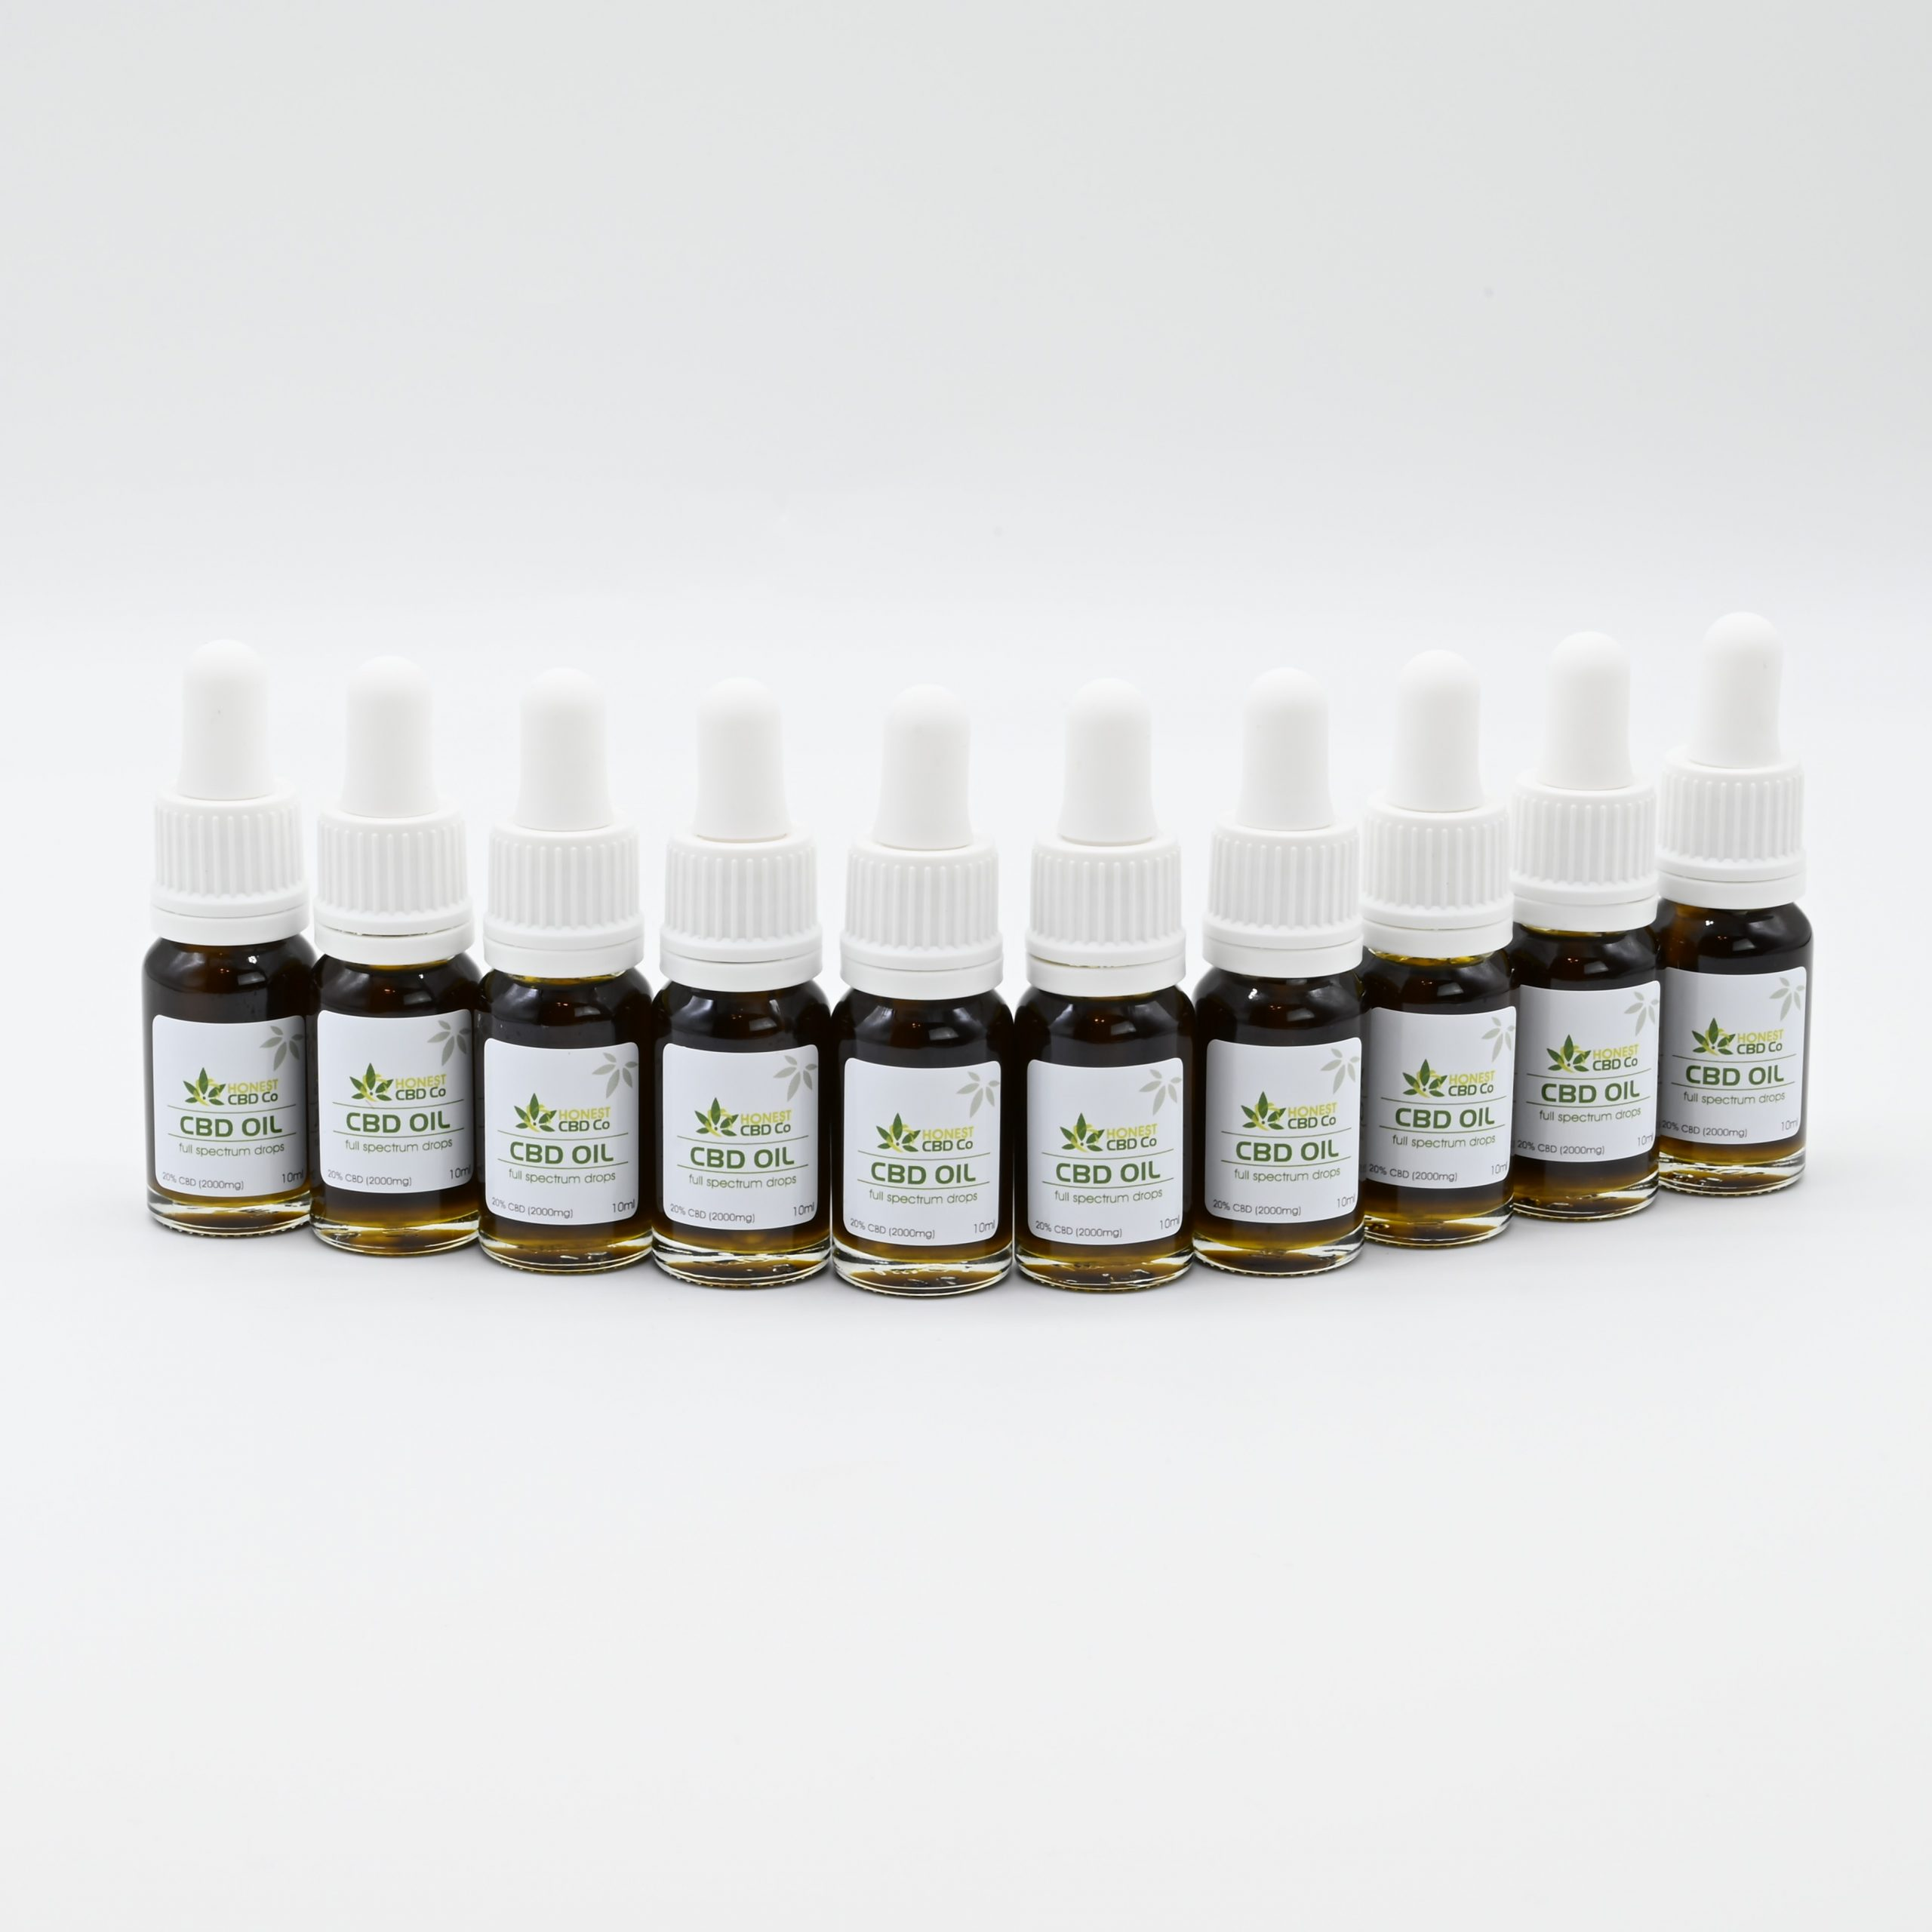 20% Full Spectrum CBD Oil - x10